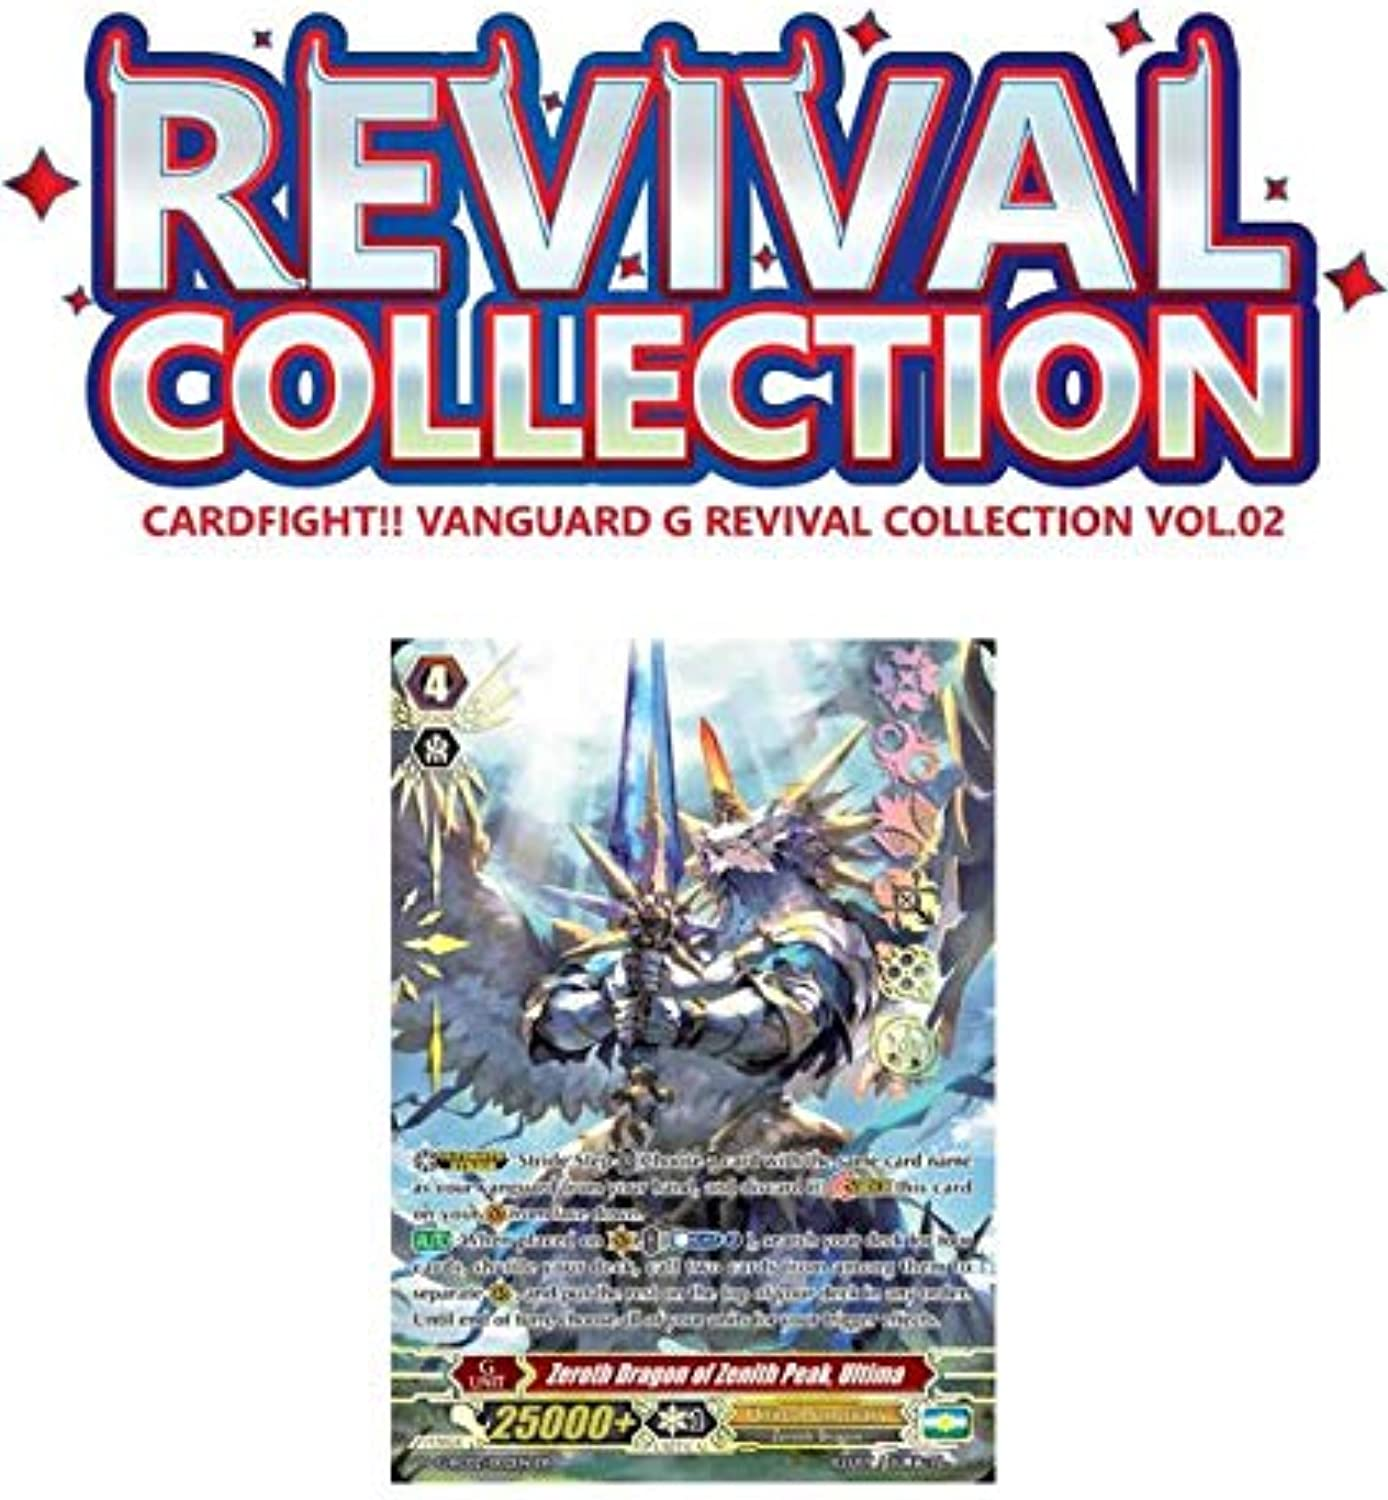 Cardfight VGEGRC02 Vanguard GRevival Collection Vol.2Booster Display mit 10 Packungen